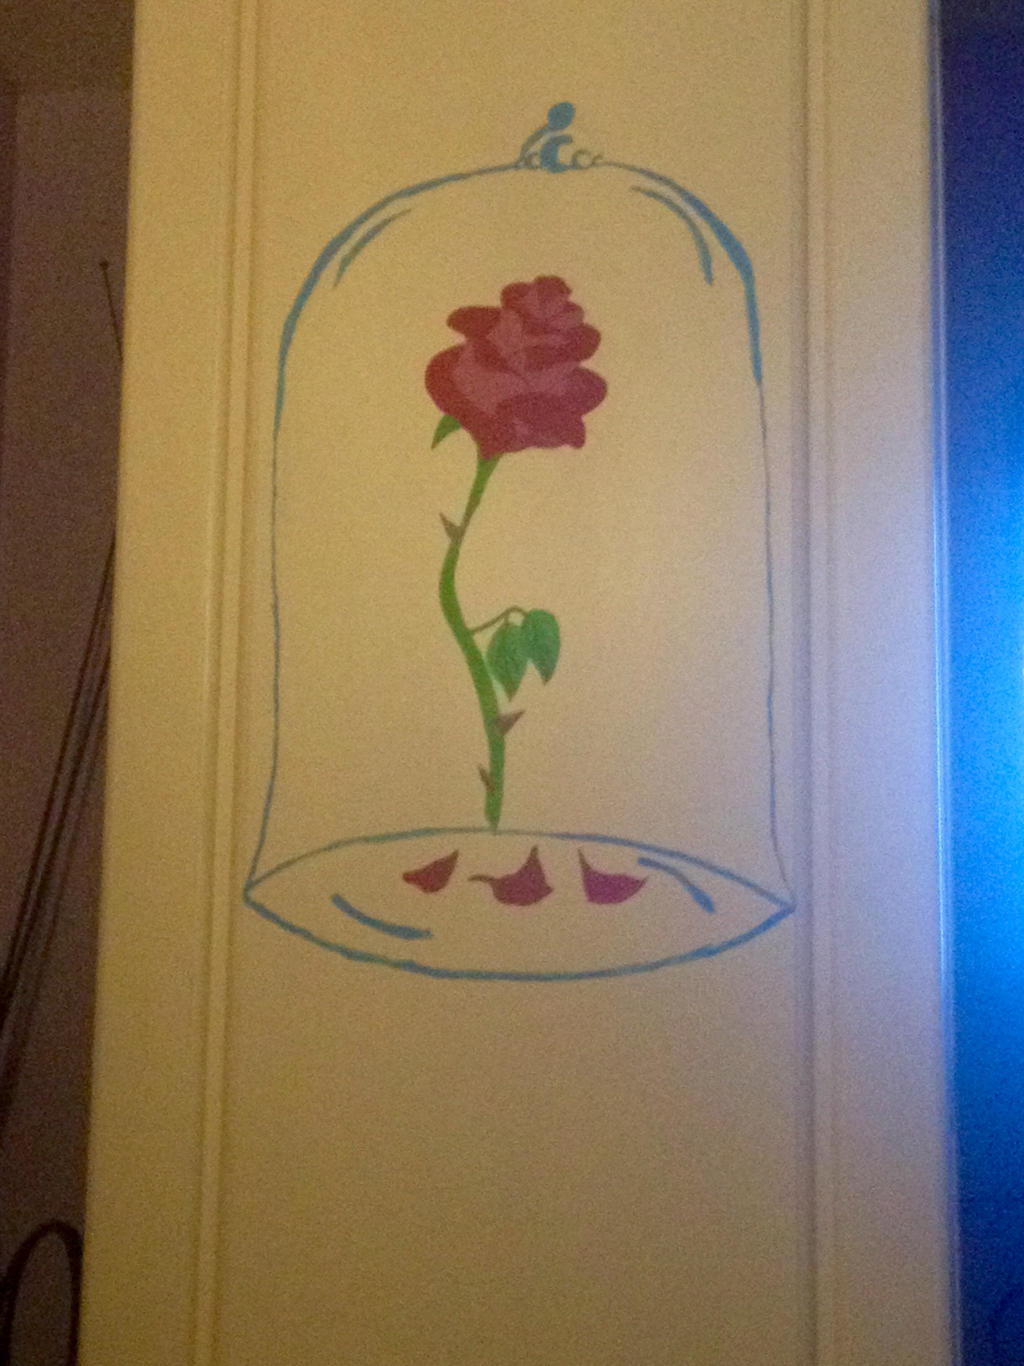 Beauty And The Beast Rose Painting On Wardrobe By Littlelottie95 On Deviantart